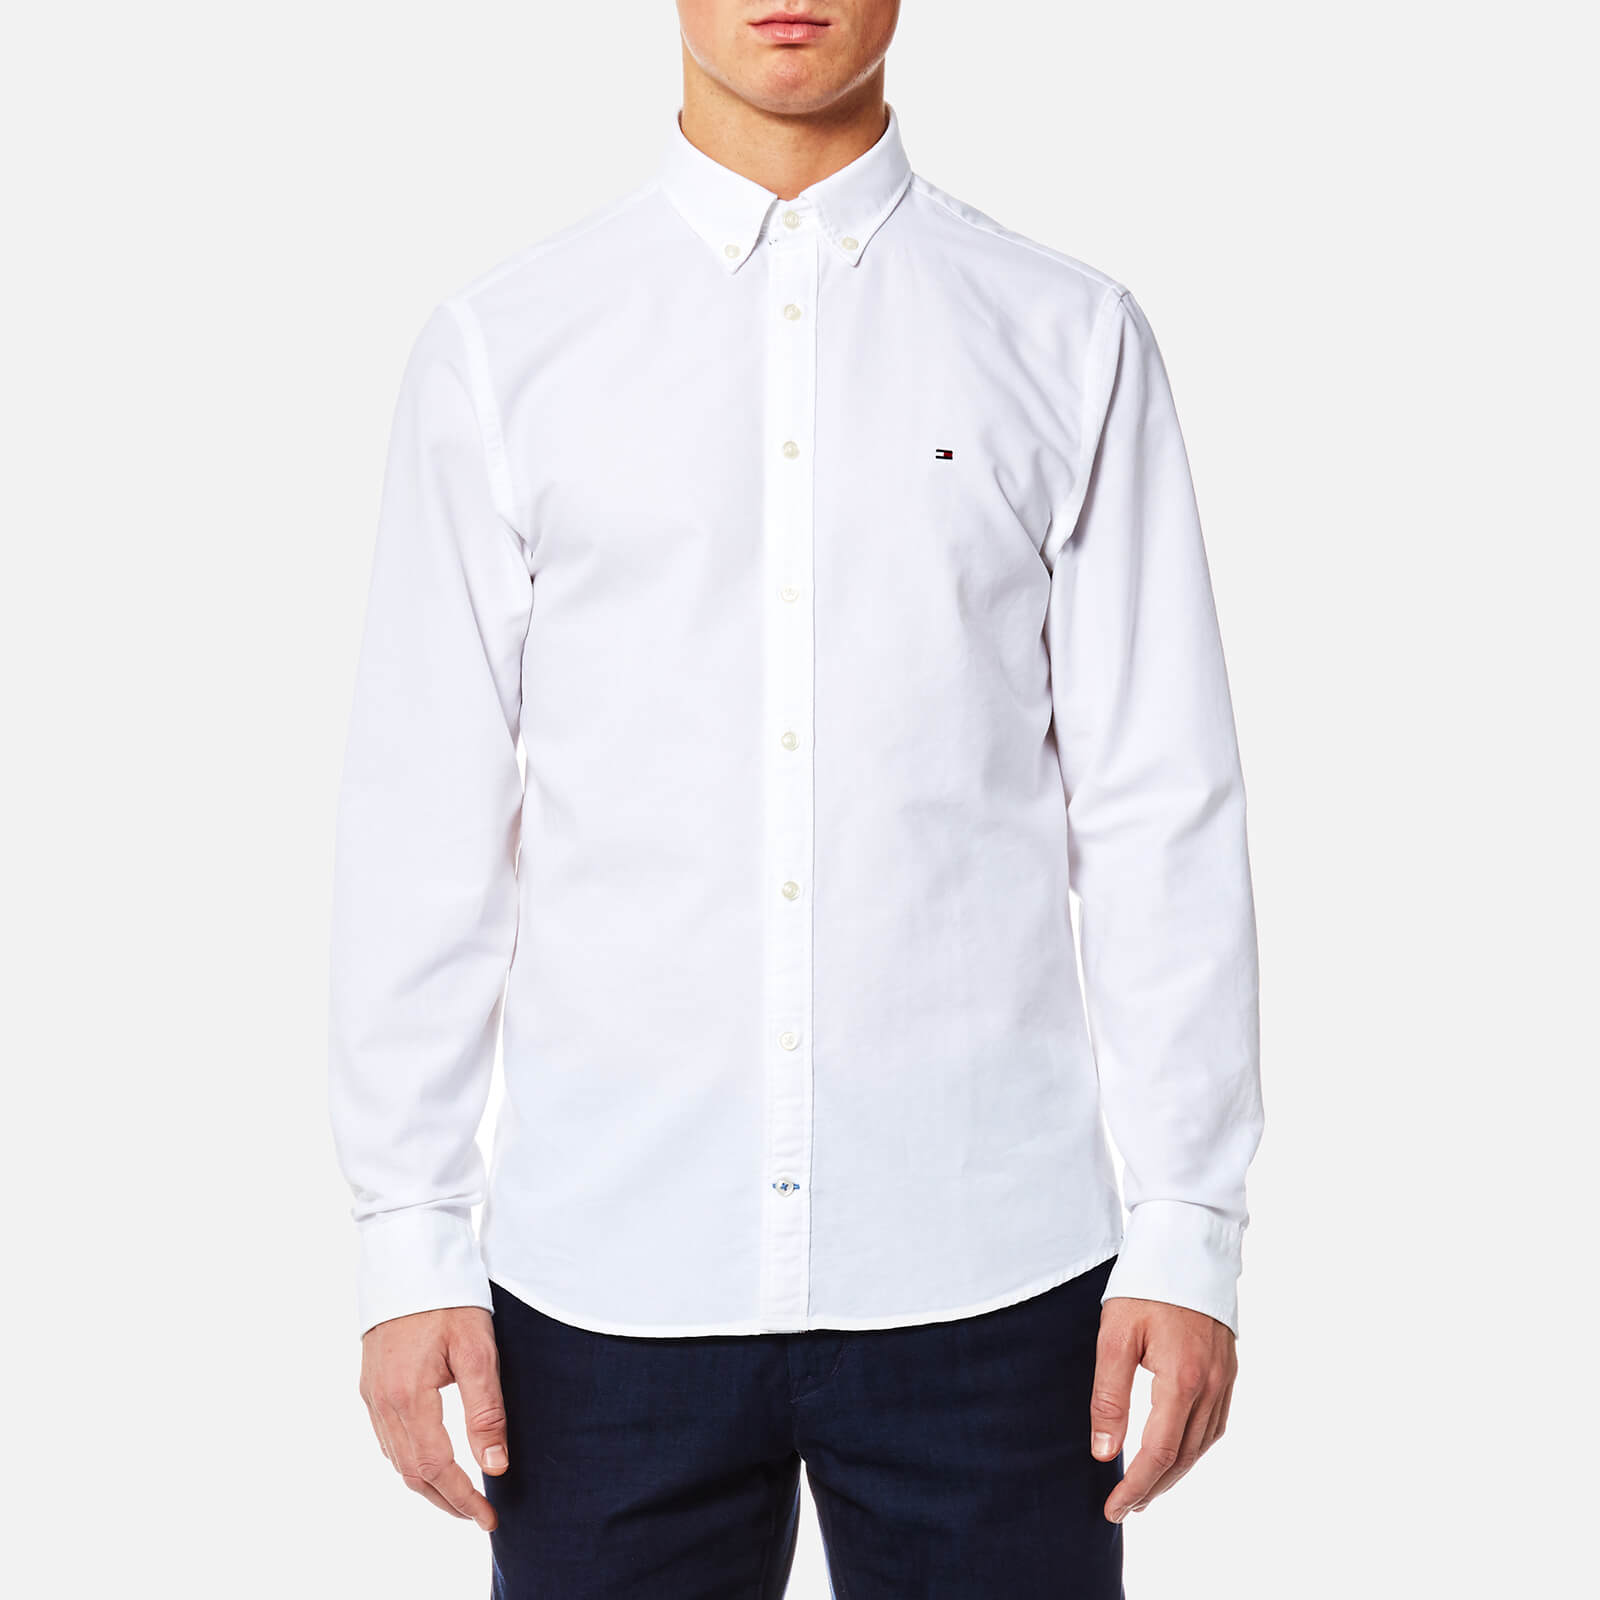 2e2c529c01bd Tommy Hilfiger Men s Engineered Oxford Long Sleeve Shirt - Bright White Mens  Clothing